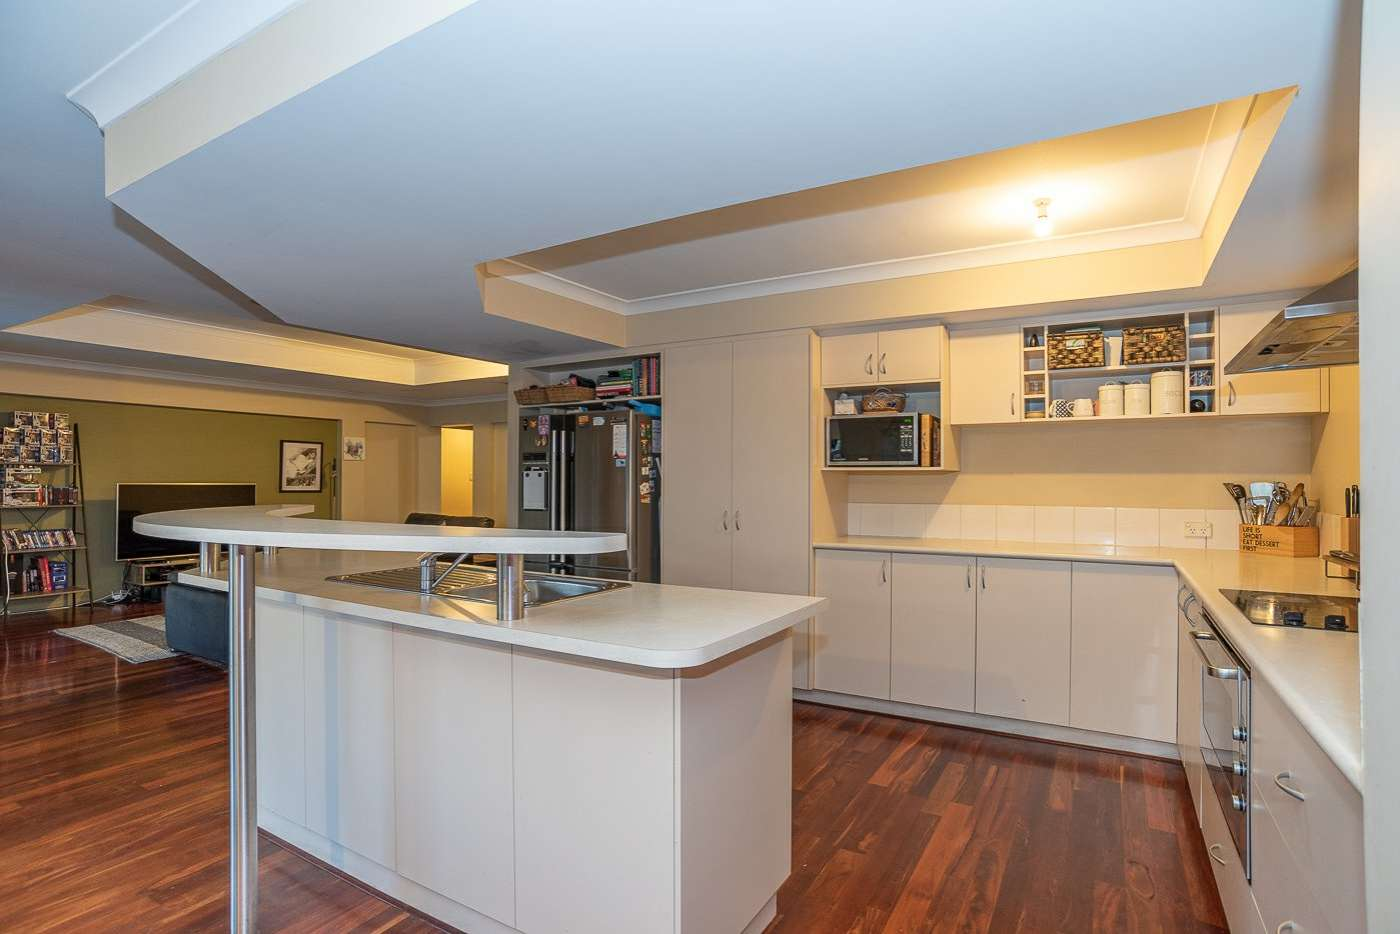 Seventh view of Homely house listing, 9 Dragonfly Way, Beeliar WA 6164